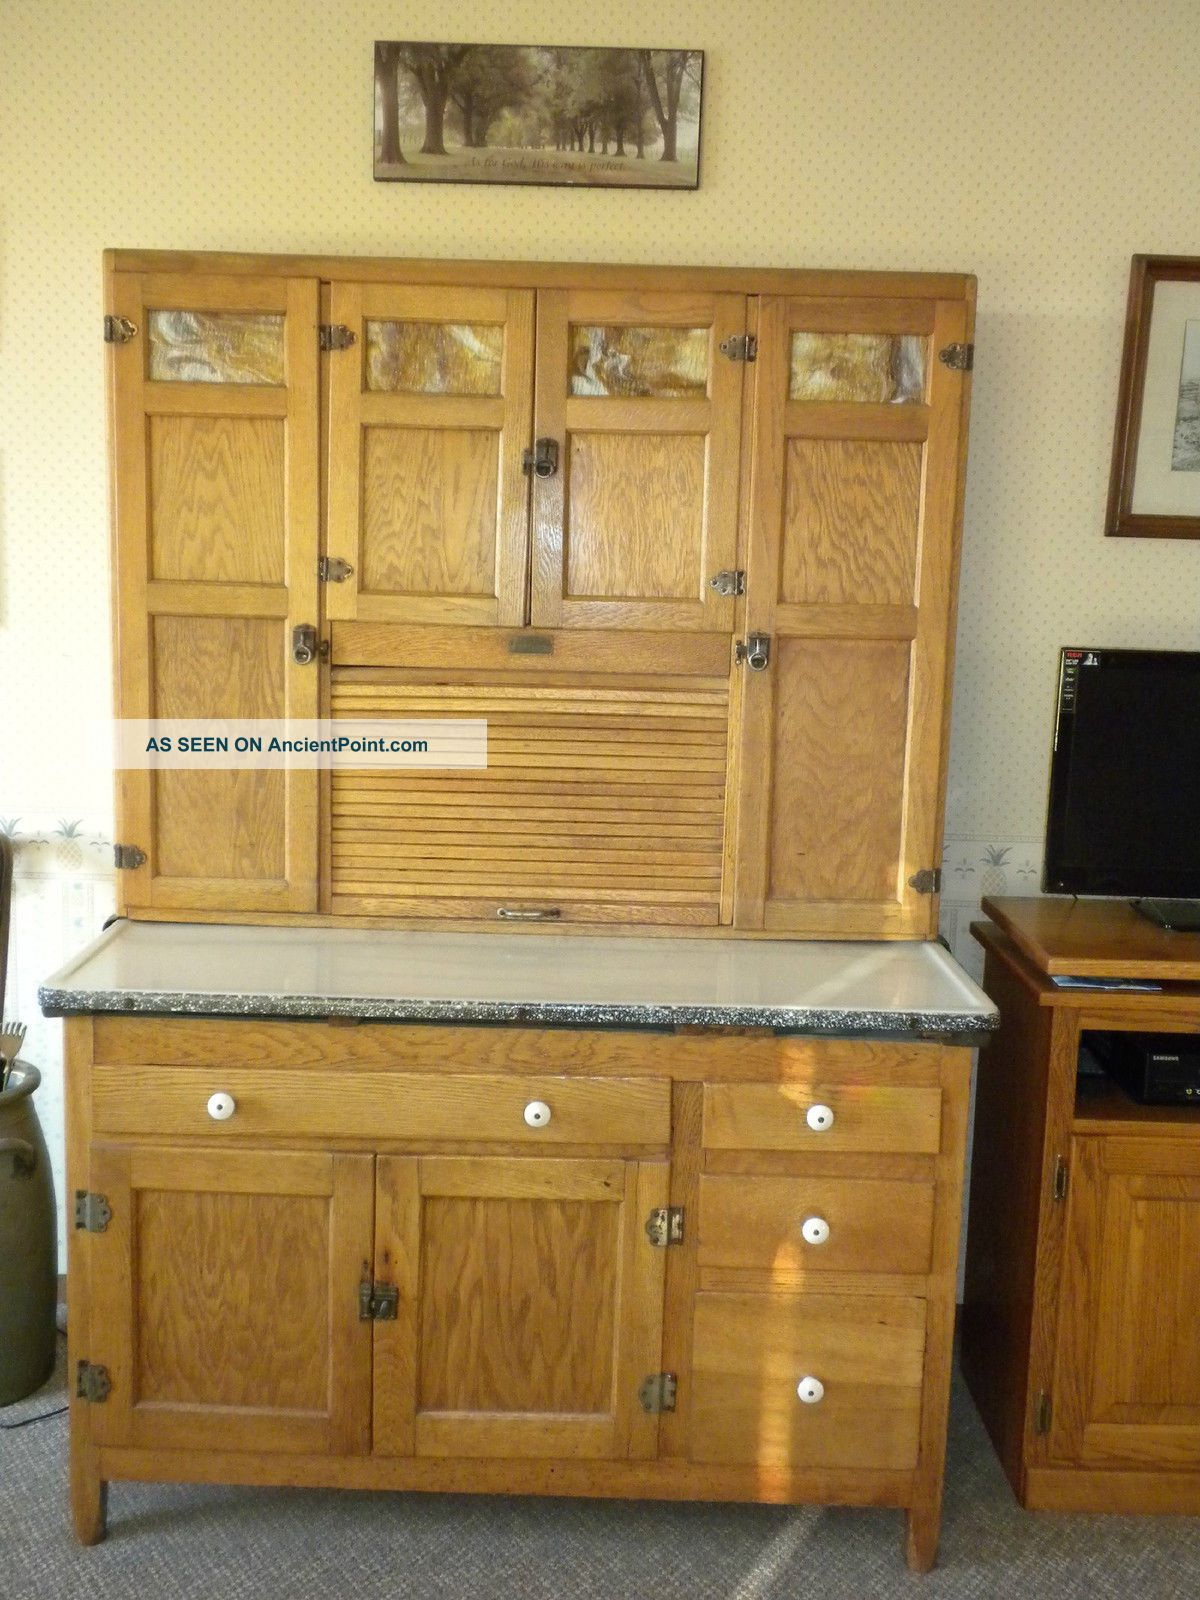 1930 S Oak Ers Hoosier Kitchen Cabinet With Flour Sifter Slag Glass Door